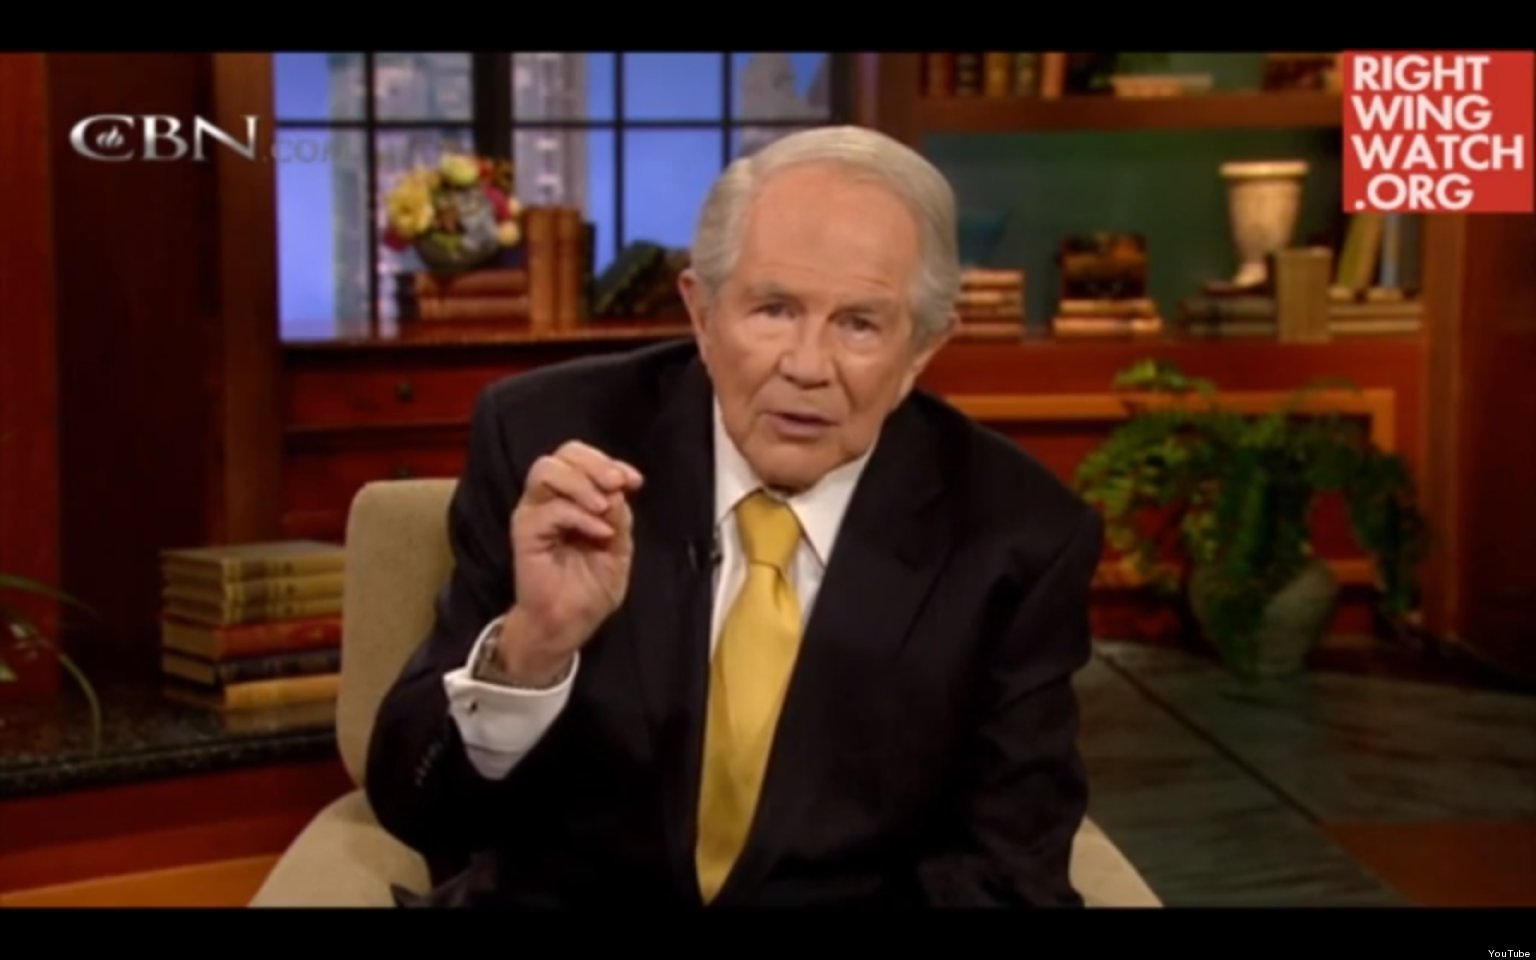 Televangelist Claims It's The Wife's Job To Keep Men Faithful